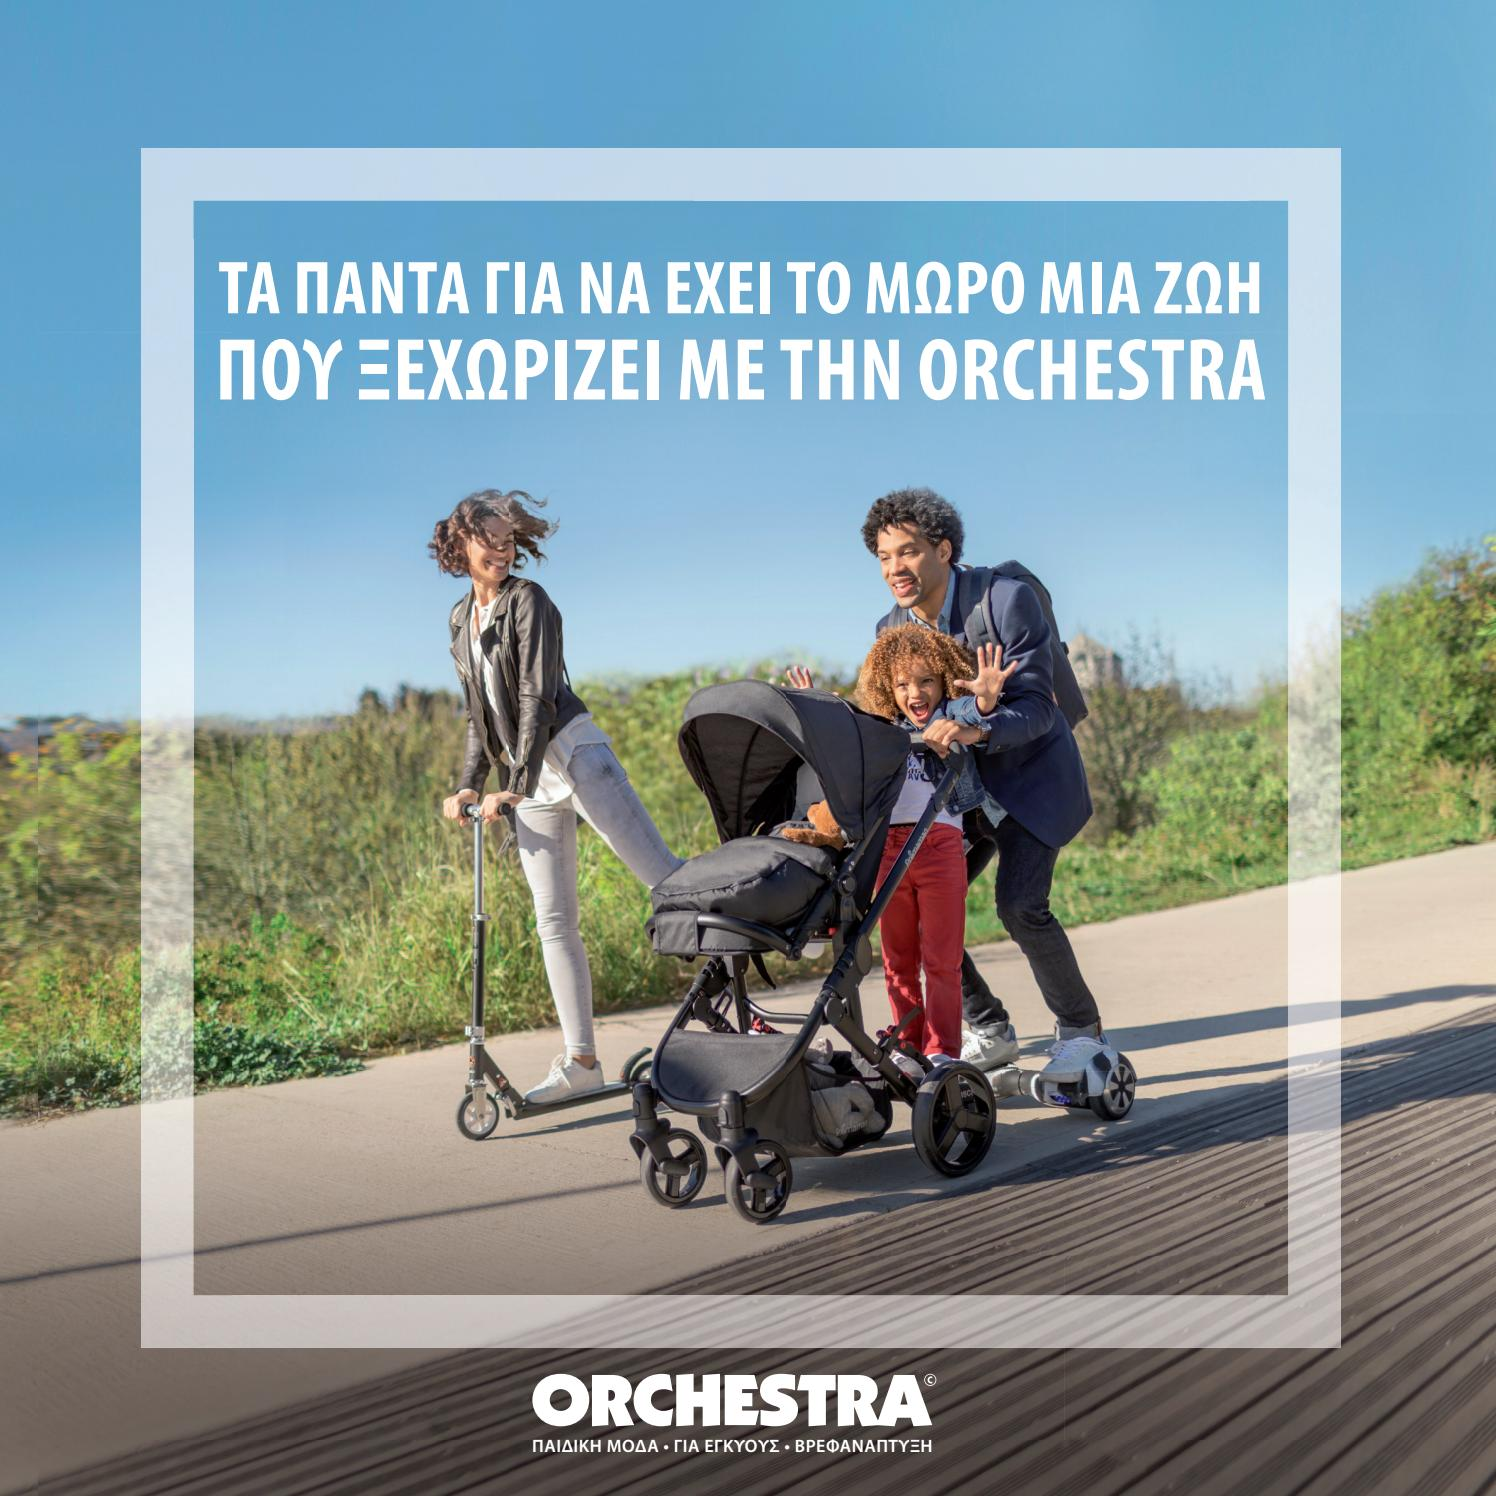 d33e6d25f46 Childcare Catalog- Orchestra - 2018 - GREECE by Orchestra - issuu